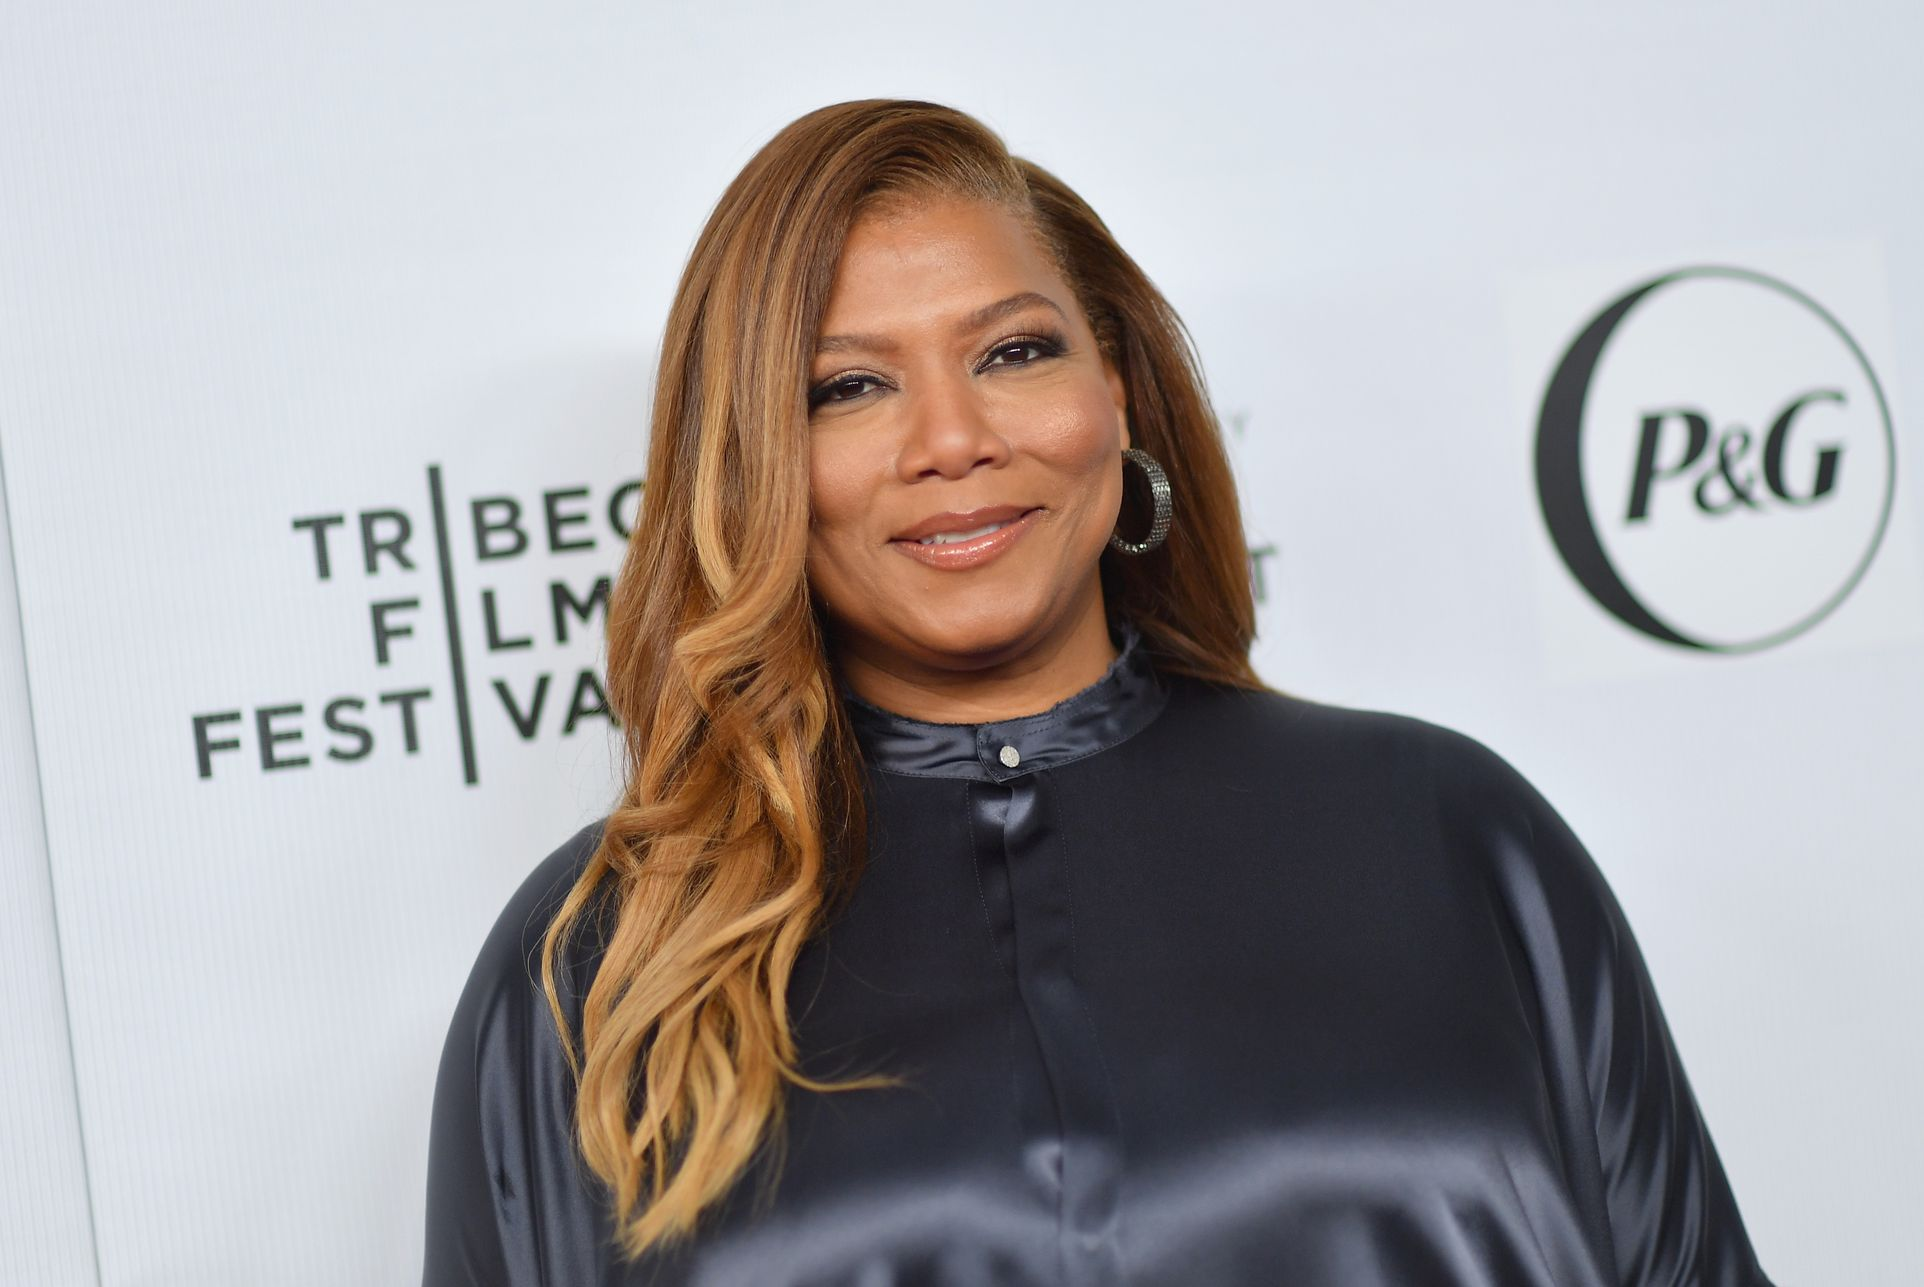 Queen Latifah Is To Star in 'The Equalizer' Series For CBS